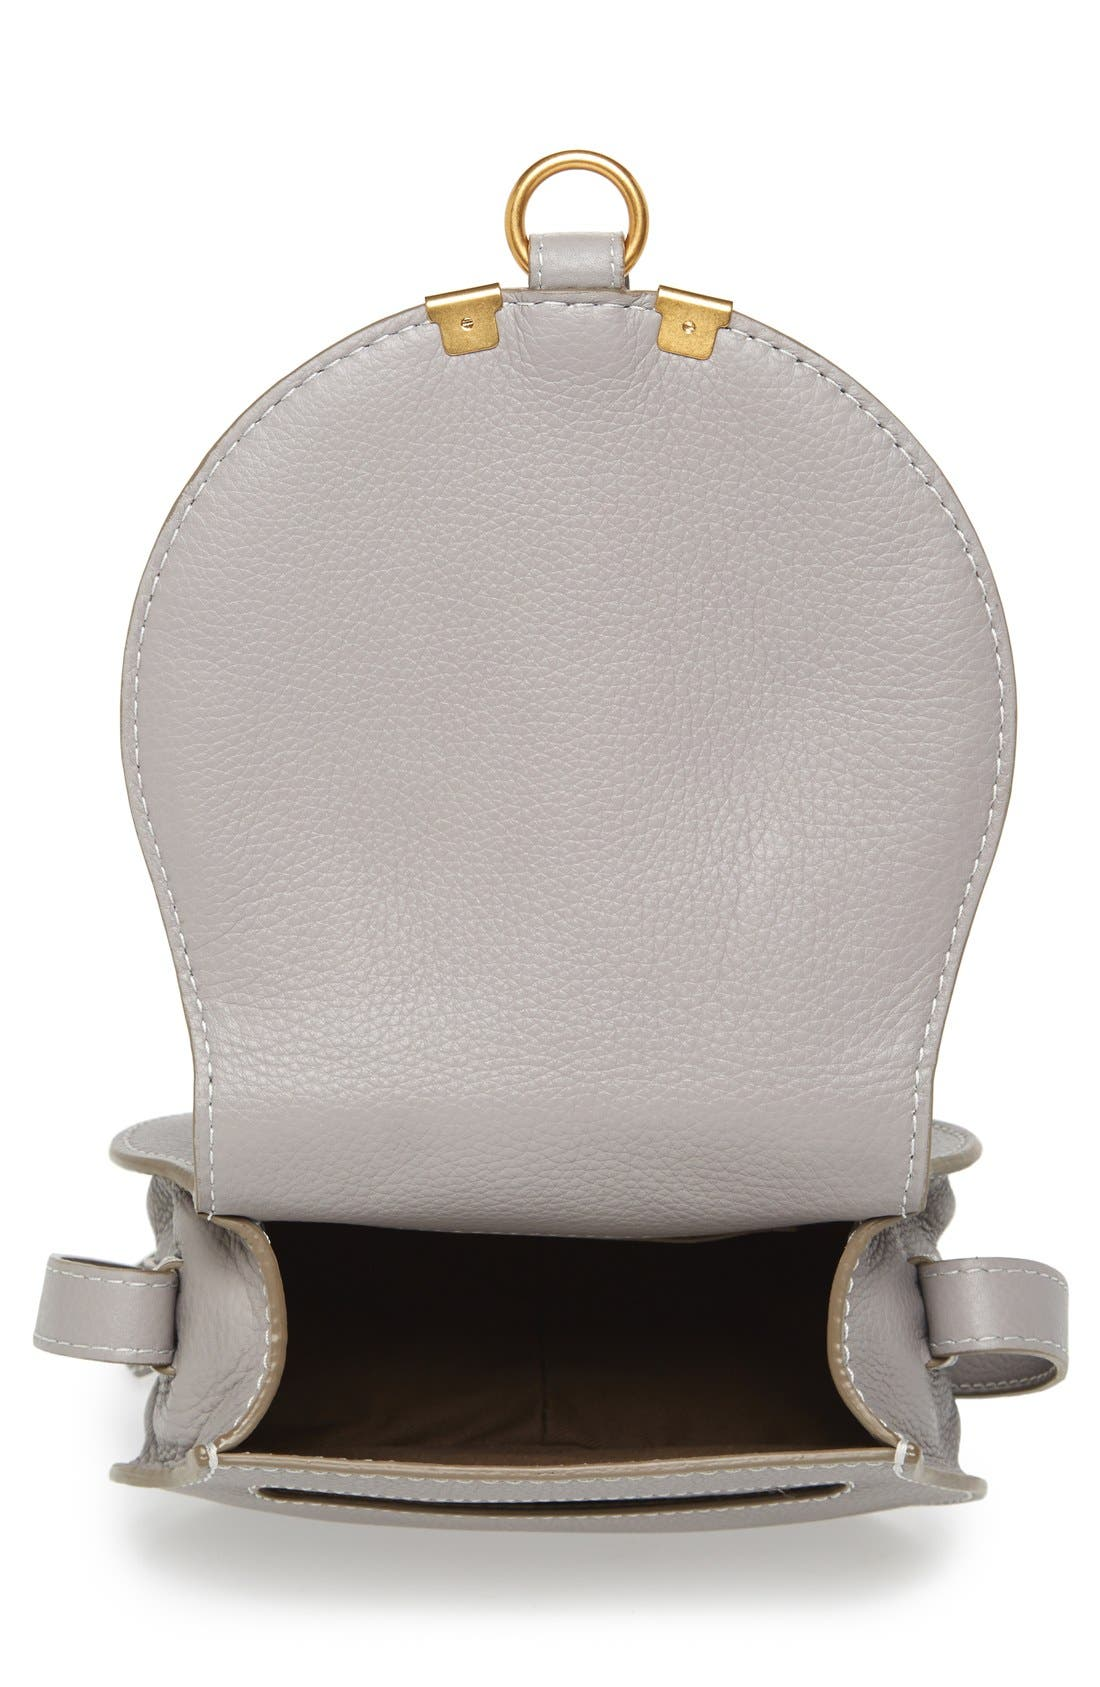 'Mini Marcie' Leather Crossbody Bag,                             Alternate thumbnail 4, color,                             CASHMERE GREY